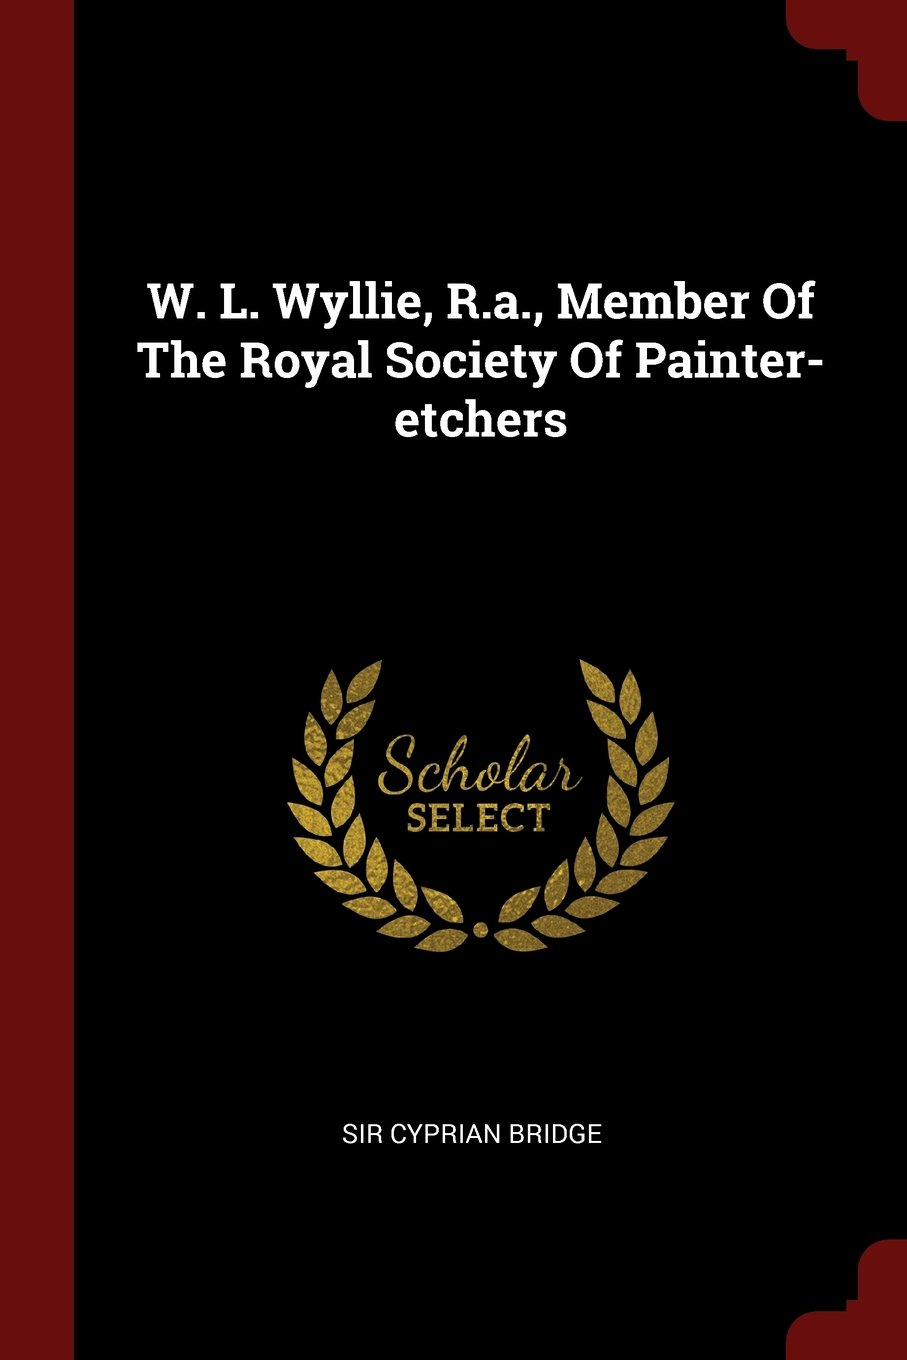 W. L. Wyllie, R.a., Member Of The Royal Society Of Painter-etchers ebook